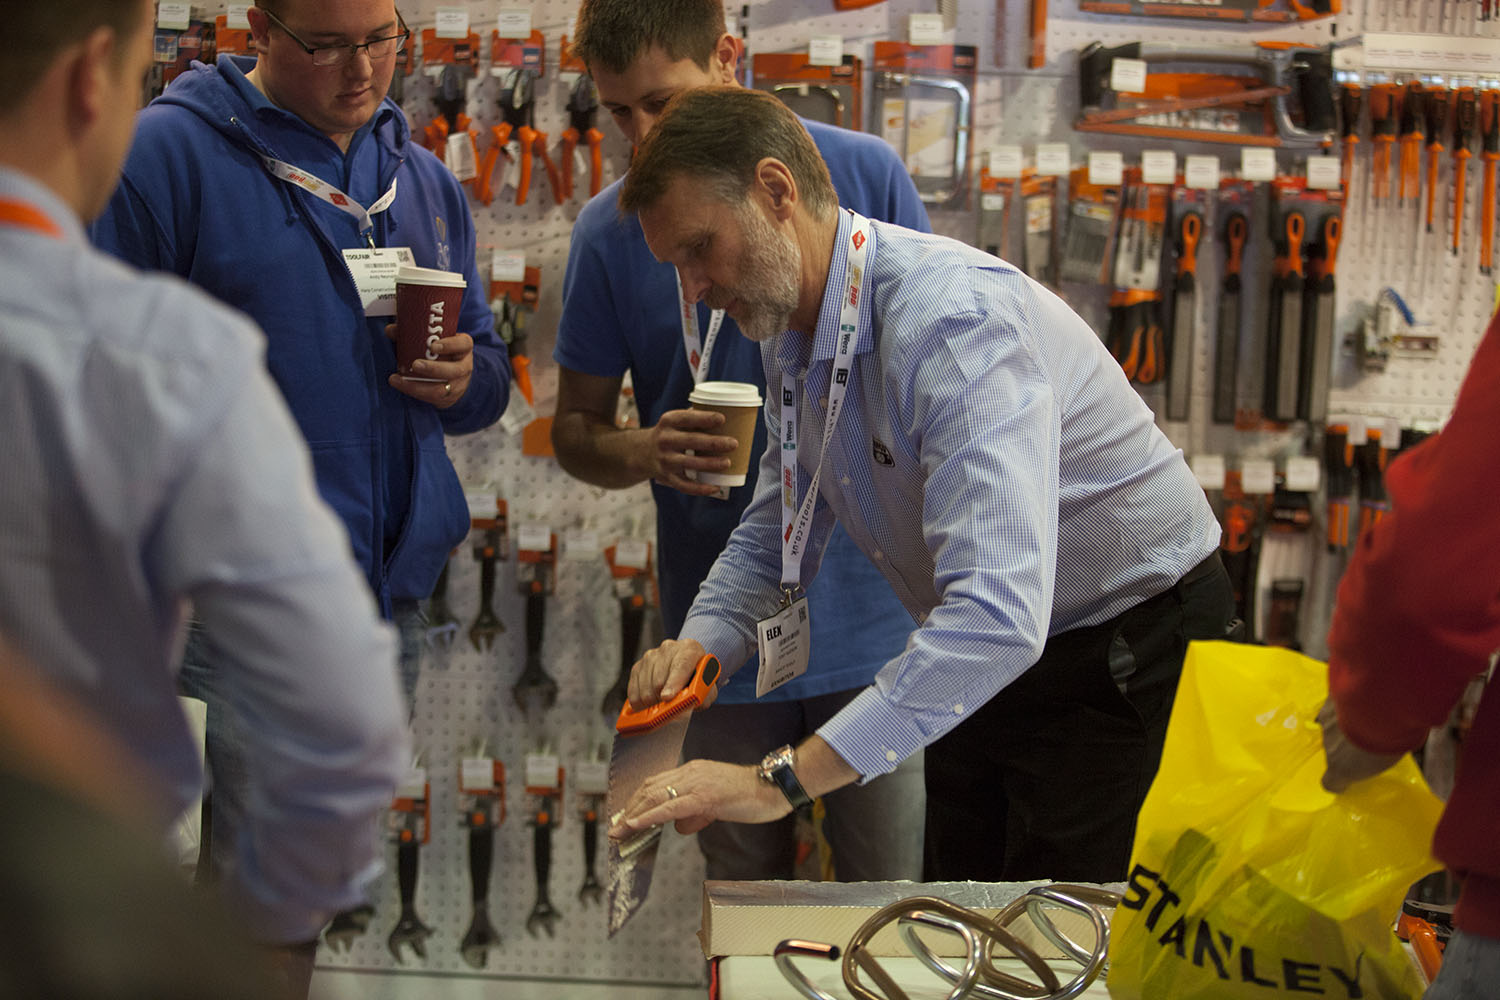 How to maximise your presence at a trade show